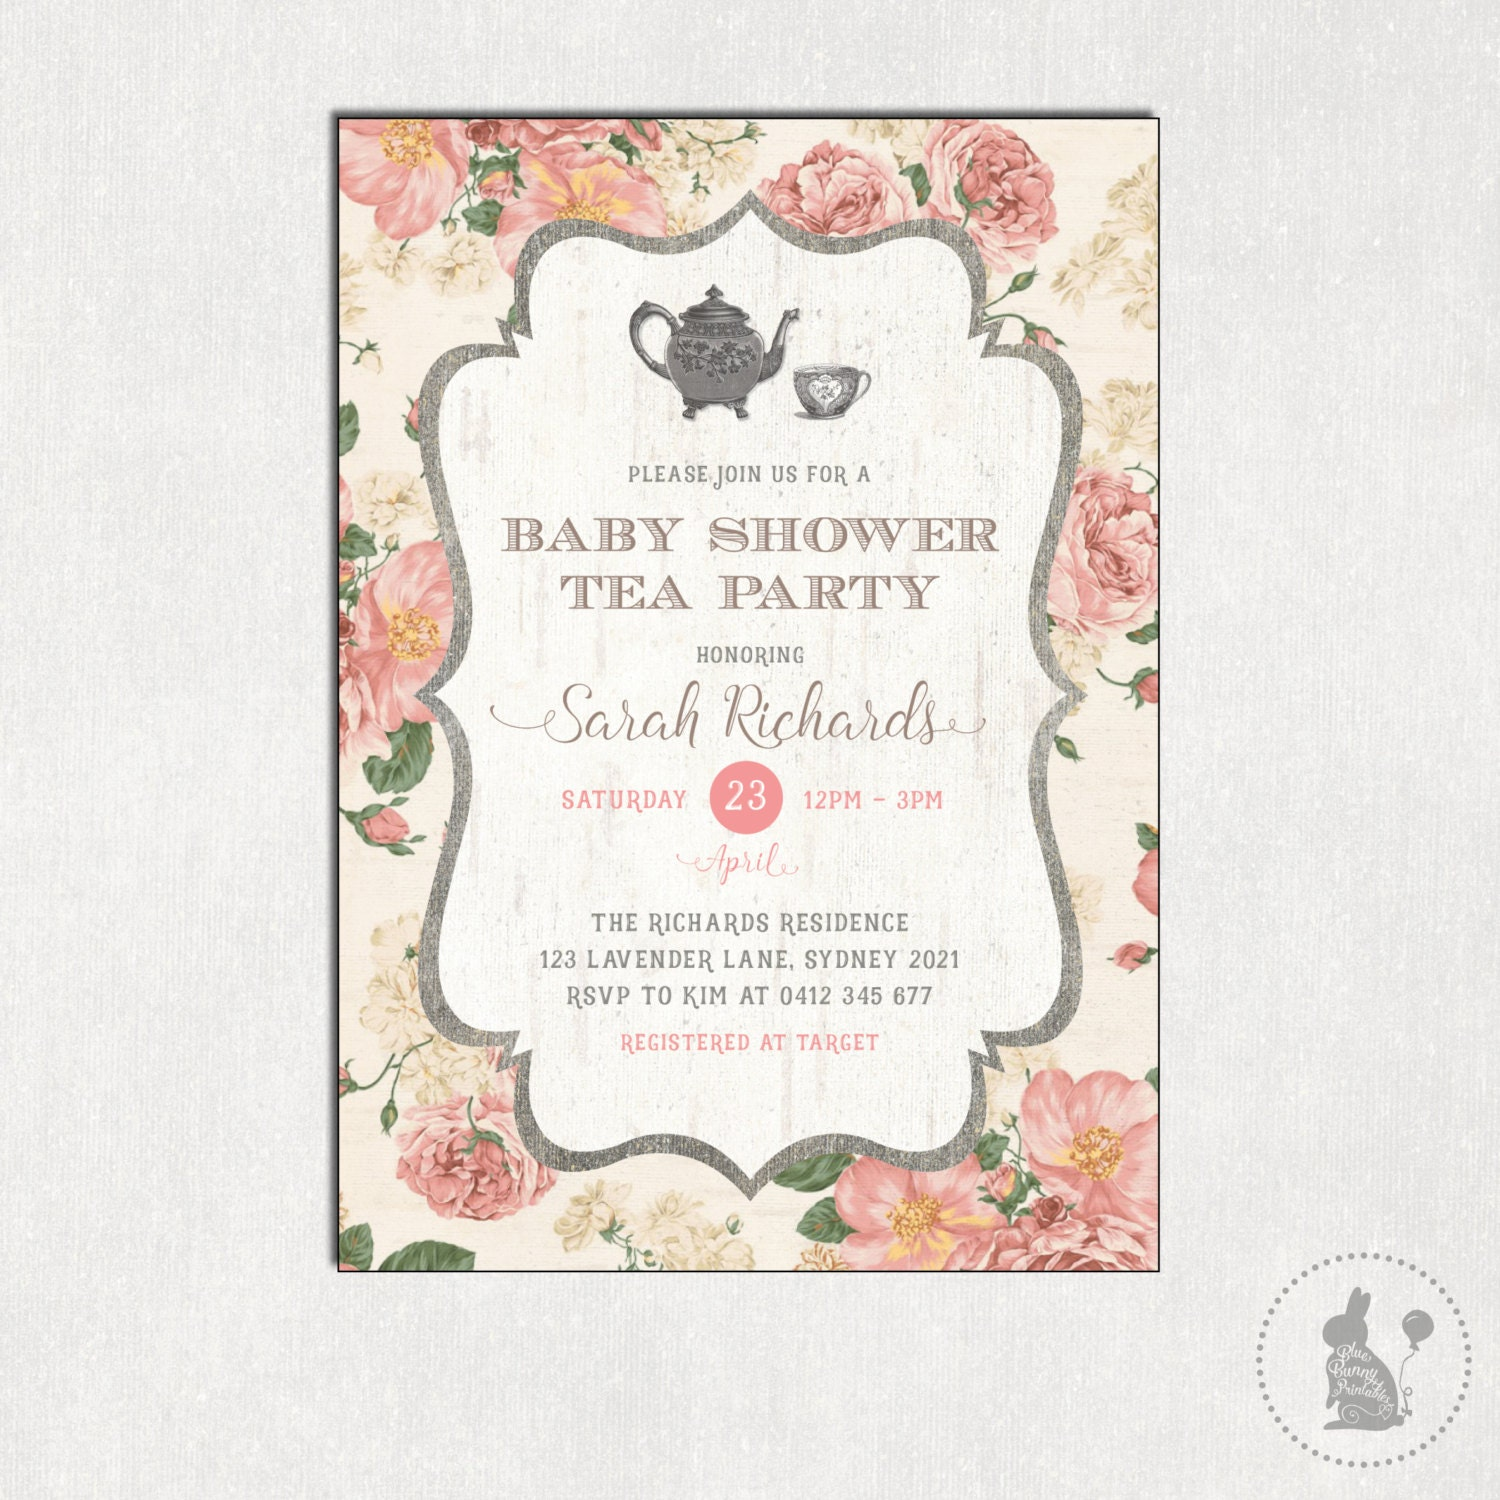 Baby shower tea party invitation vintage flowers shower zoom monicamarmolfo Image collections